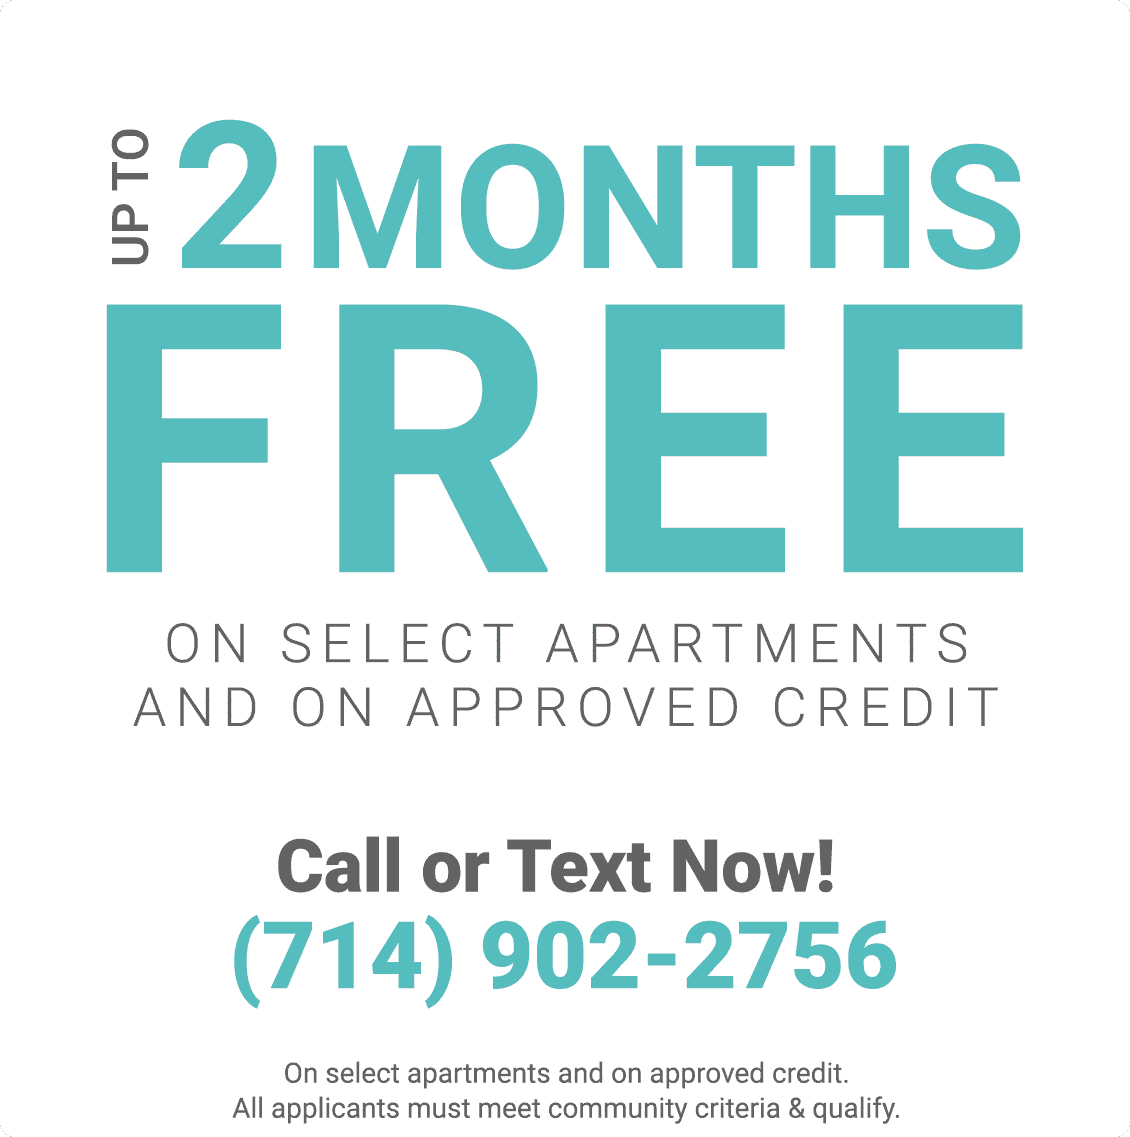 Up to Two Months Free on Select Apartments and on Approved Credit